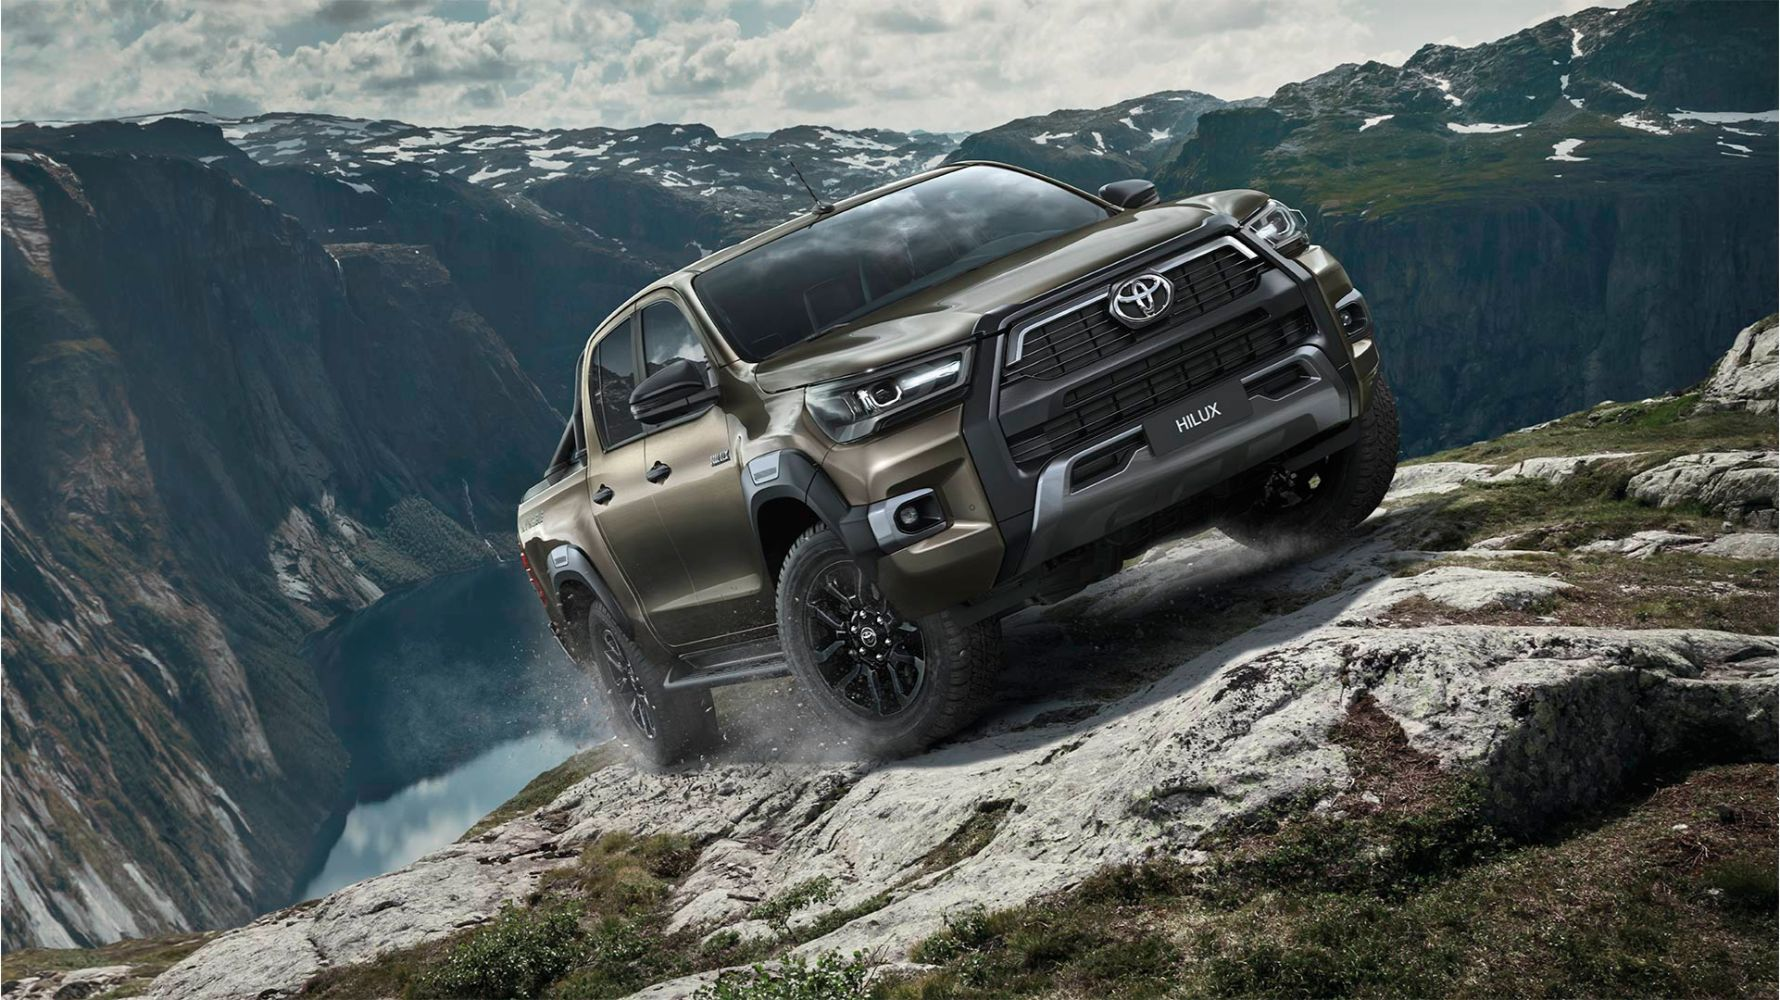 toyota_hilux_2020_gallery_01_full_tcm_3046_2017440